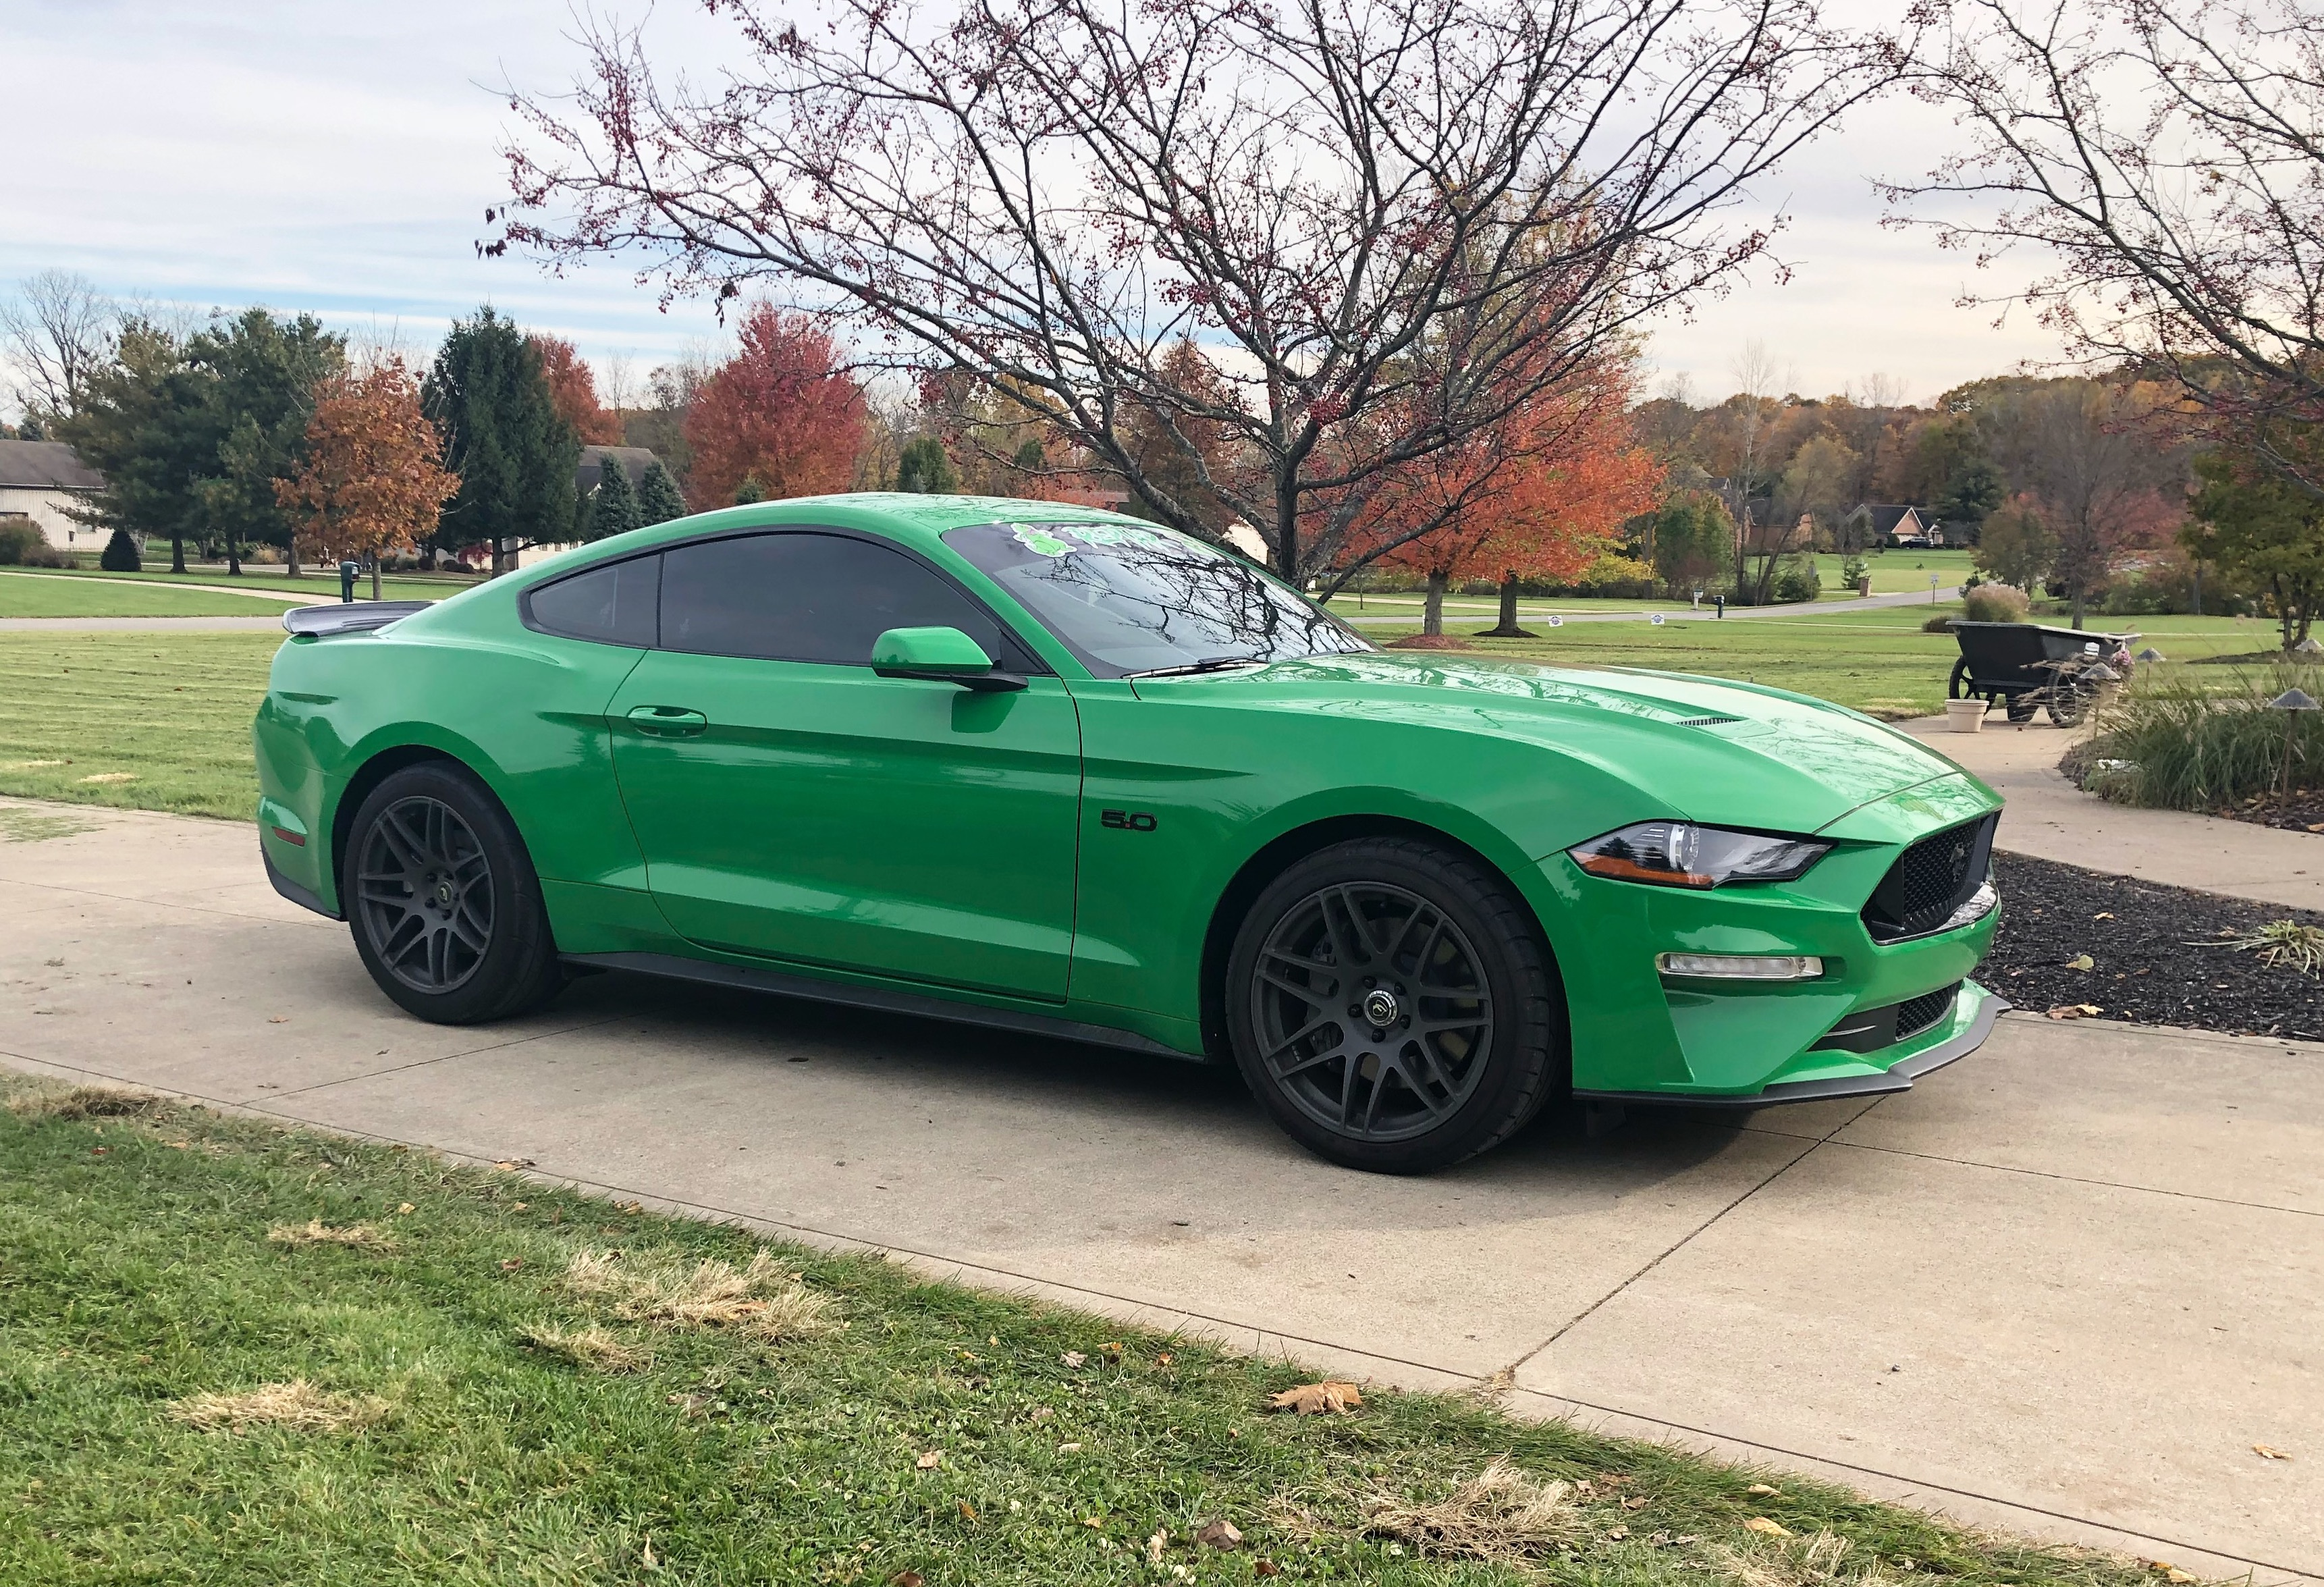 2019 Need for Green Ford Mustang GT nicknamed Reptar